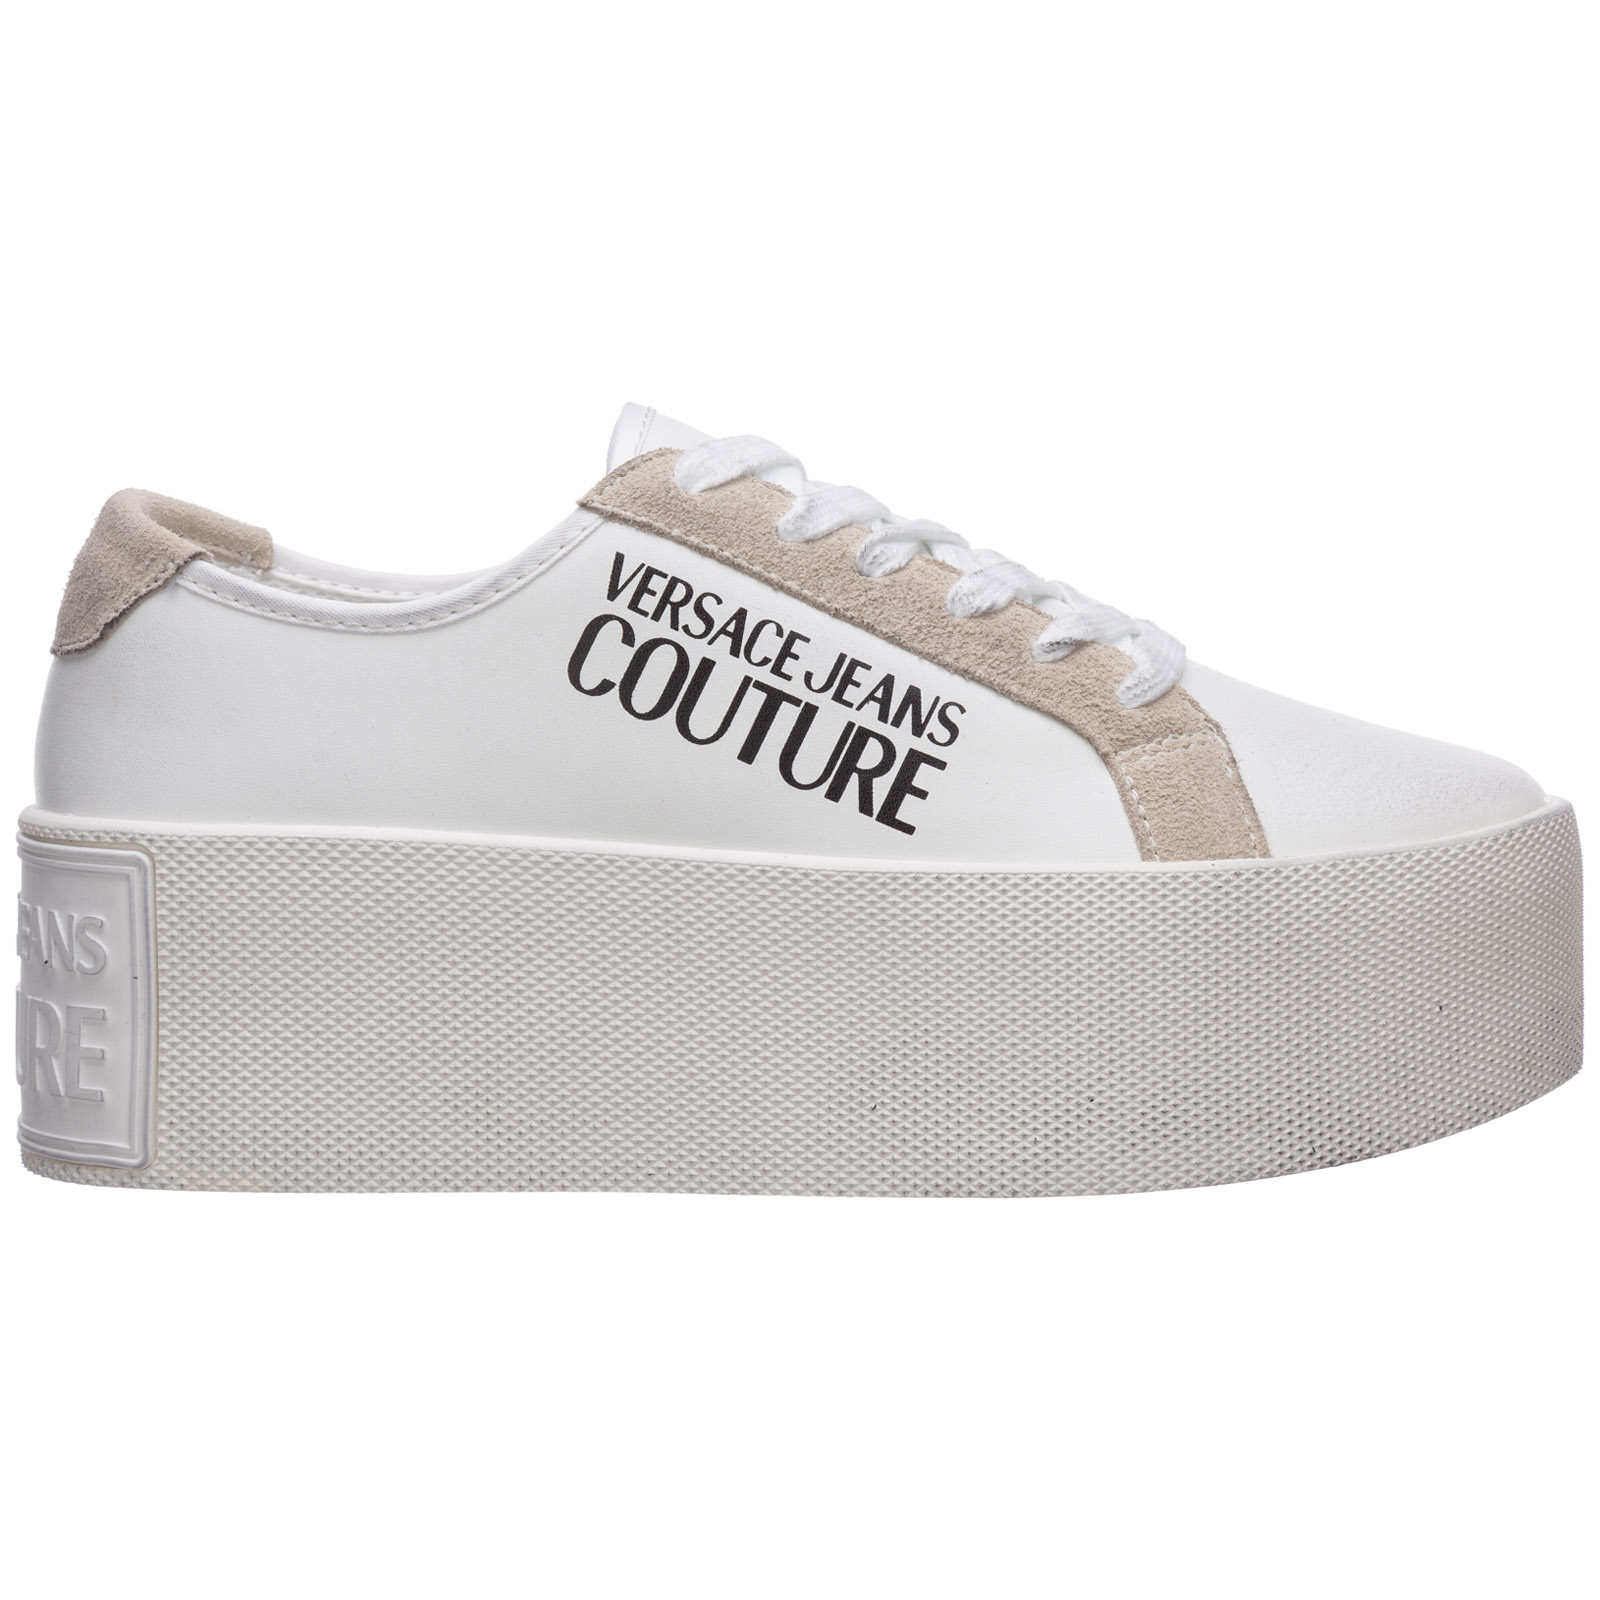 Wedge sneakers Versace Jeans Couture